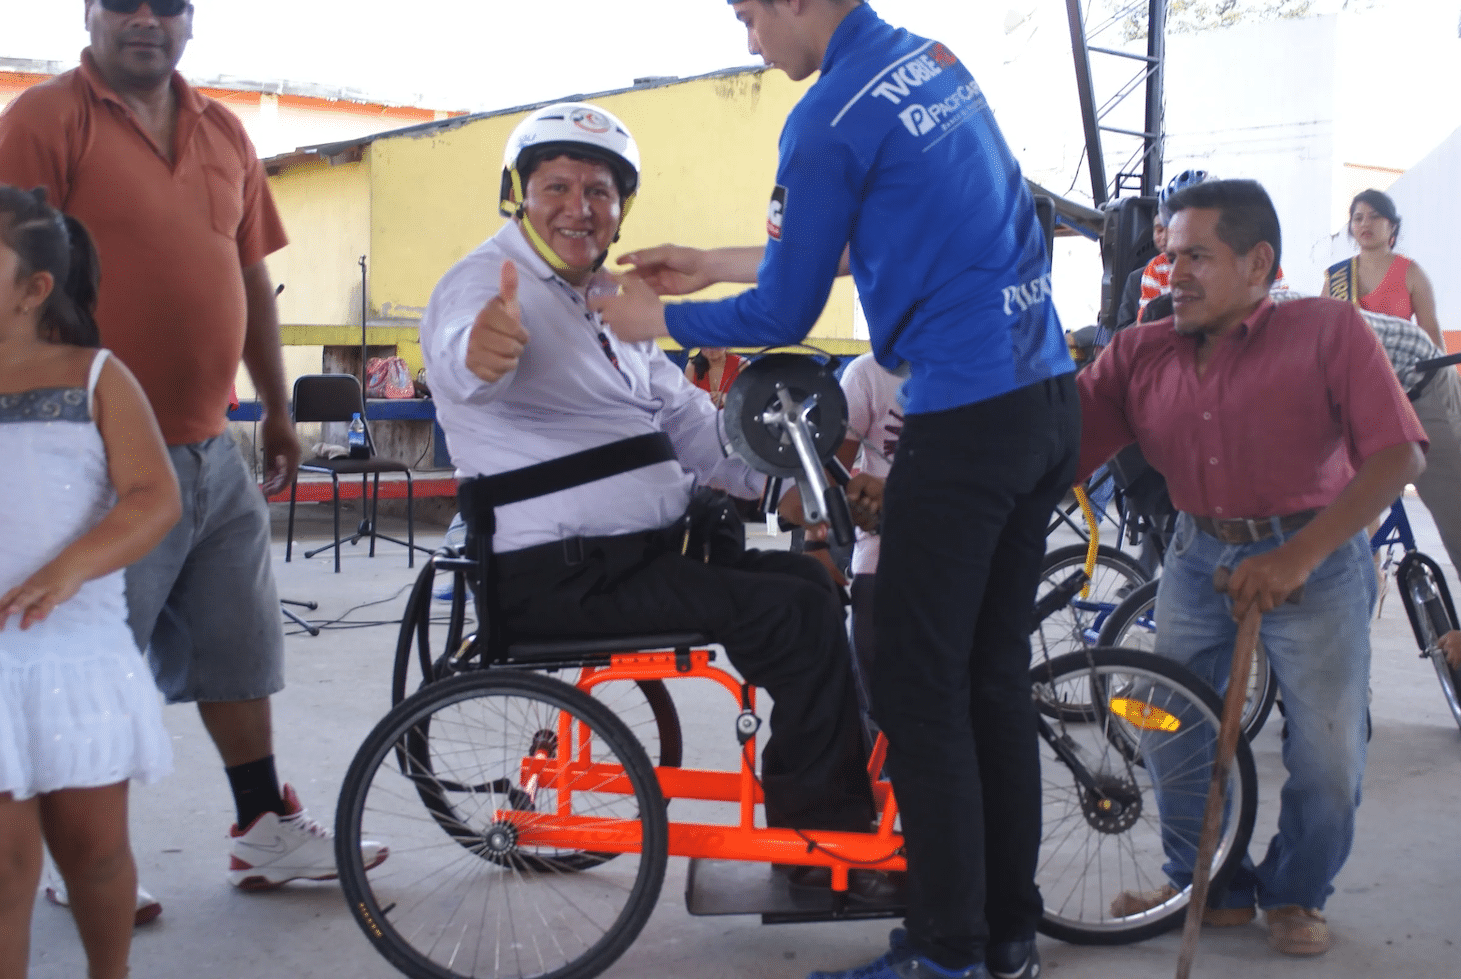 A man sits on an adaptive bike while an assistant straps him in. He's looking at the camera holding his thumb up.